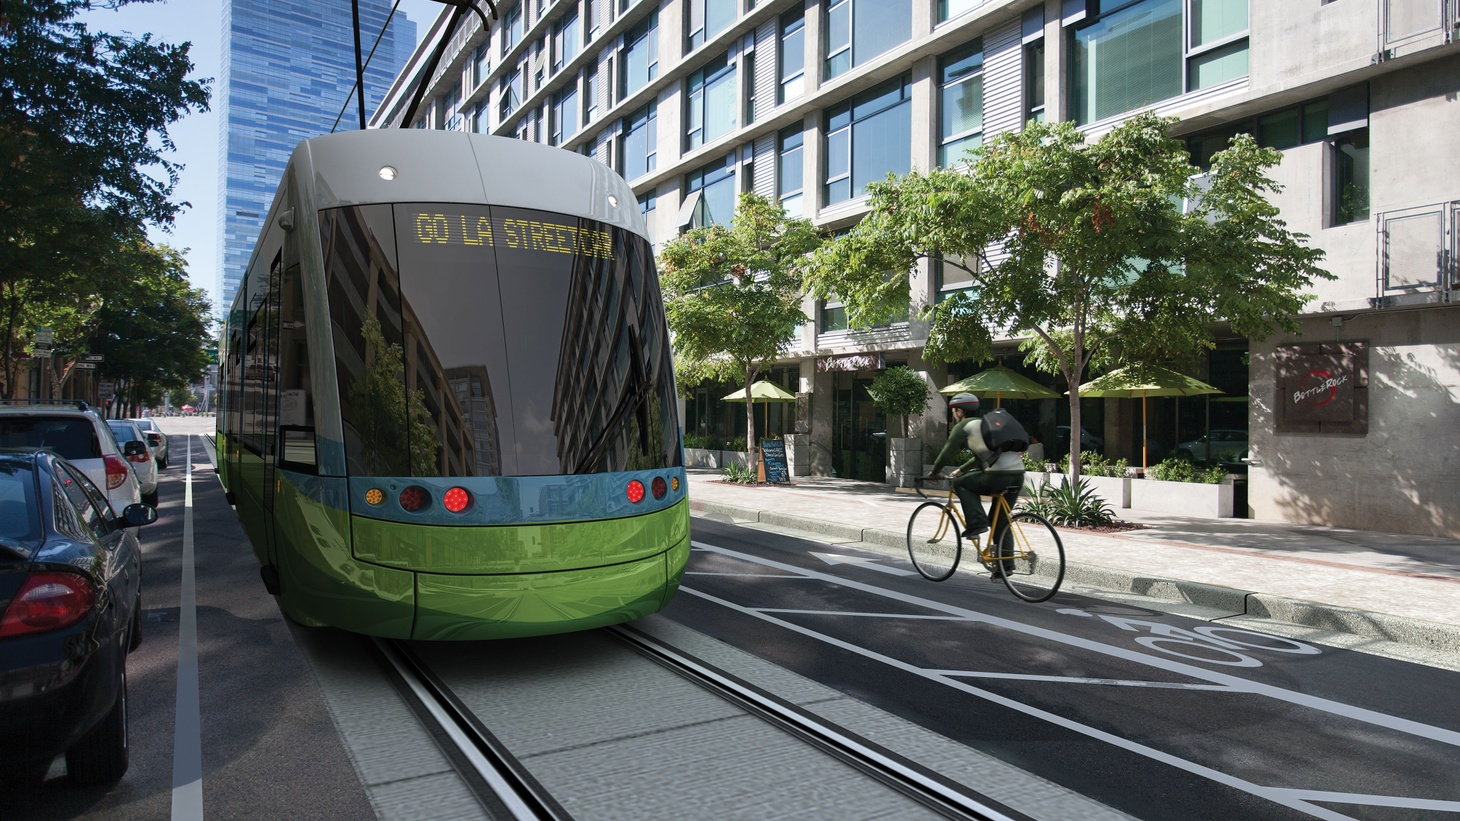 The effort to bring a streetcar back to downtown Los Angeles passed another hurdle this week. The LA City Council voted 13-0 to approve a 3.8-mile route that includes Grand Park, the Convention Center, the Fashion District, and theaters and shops along Broadway.